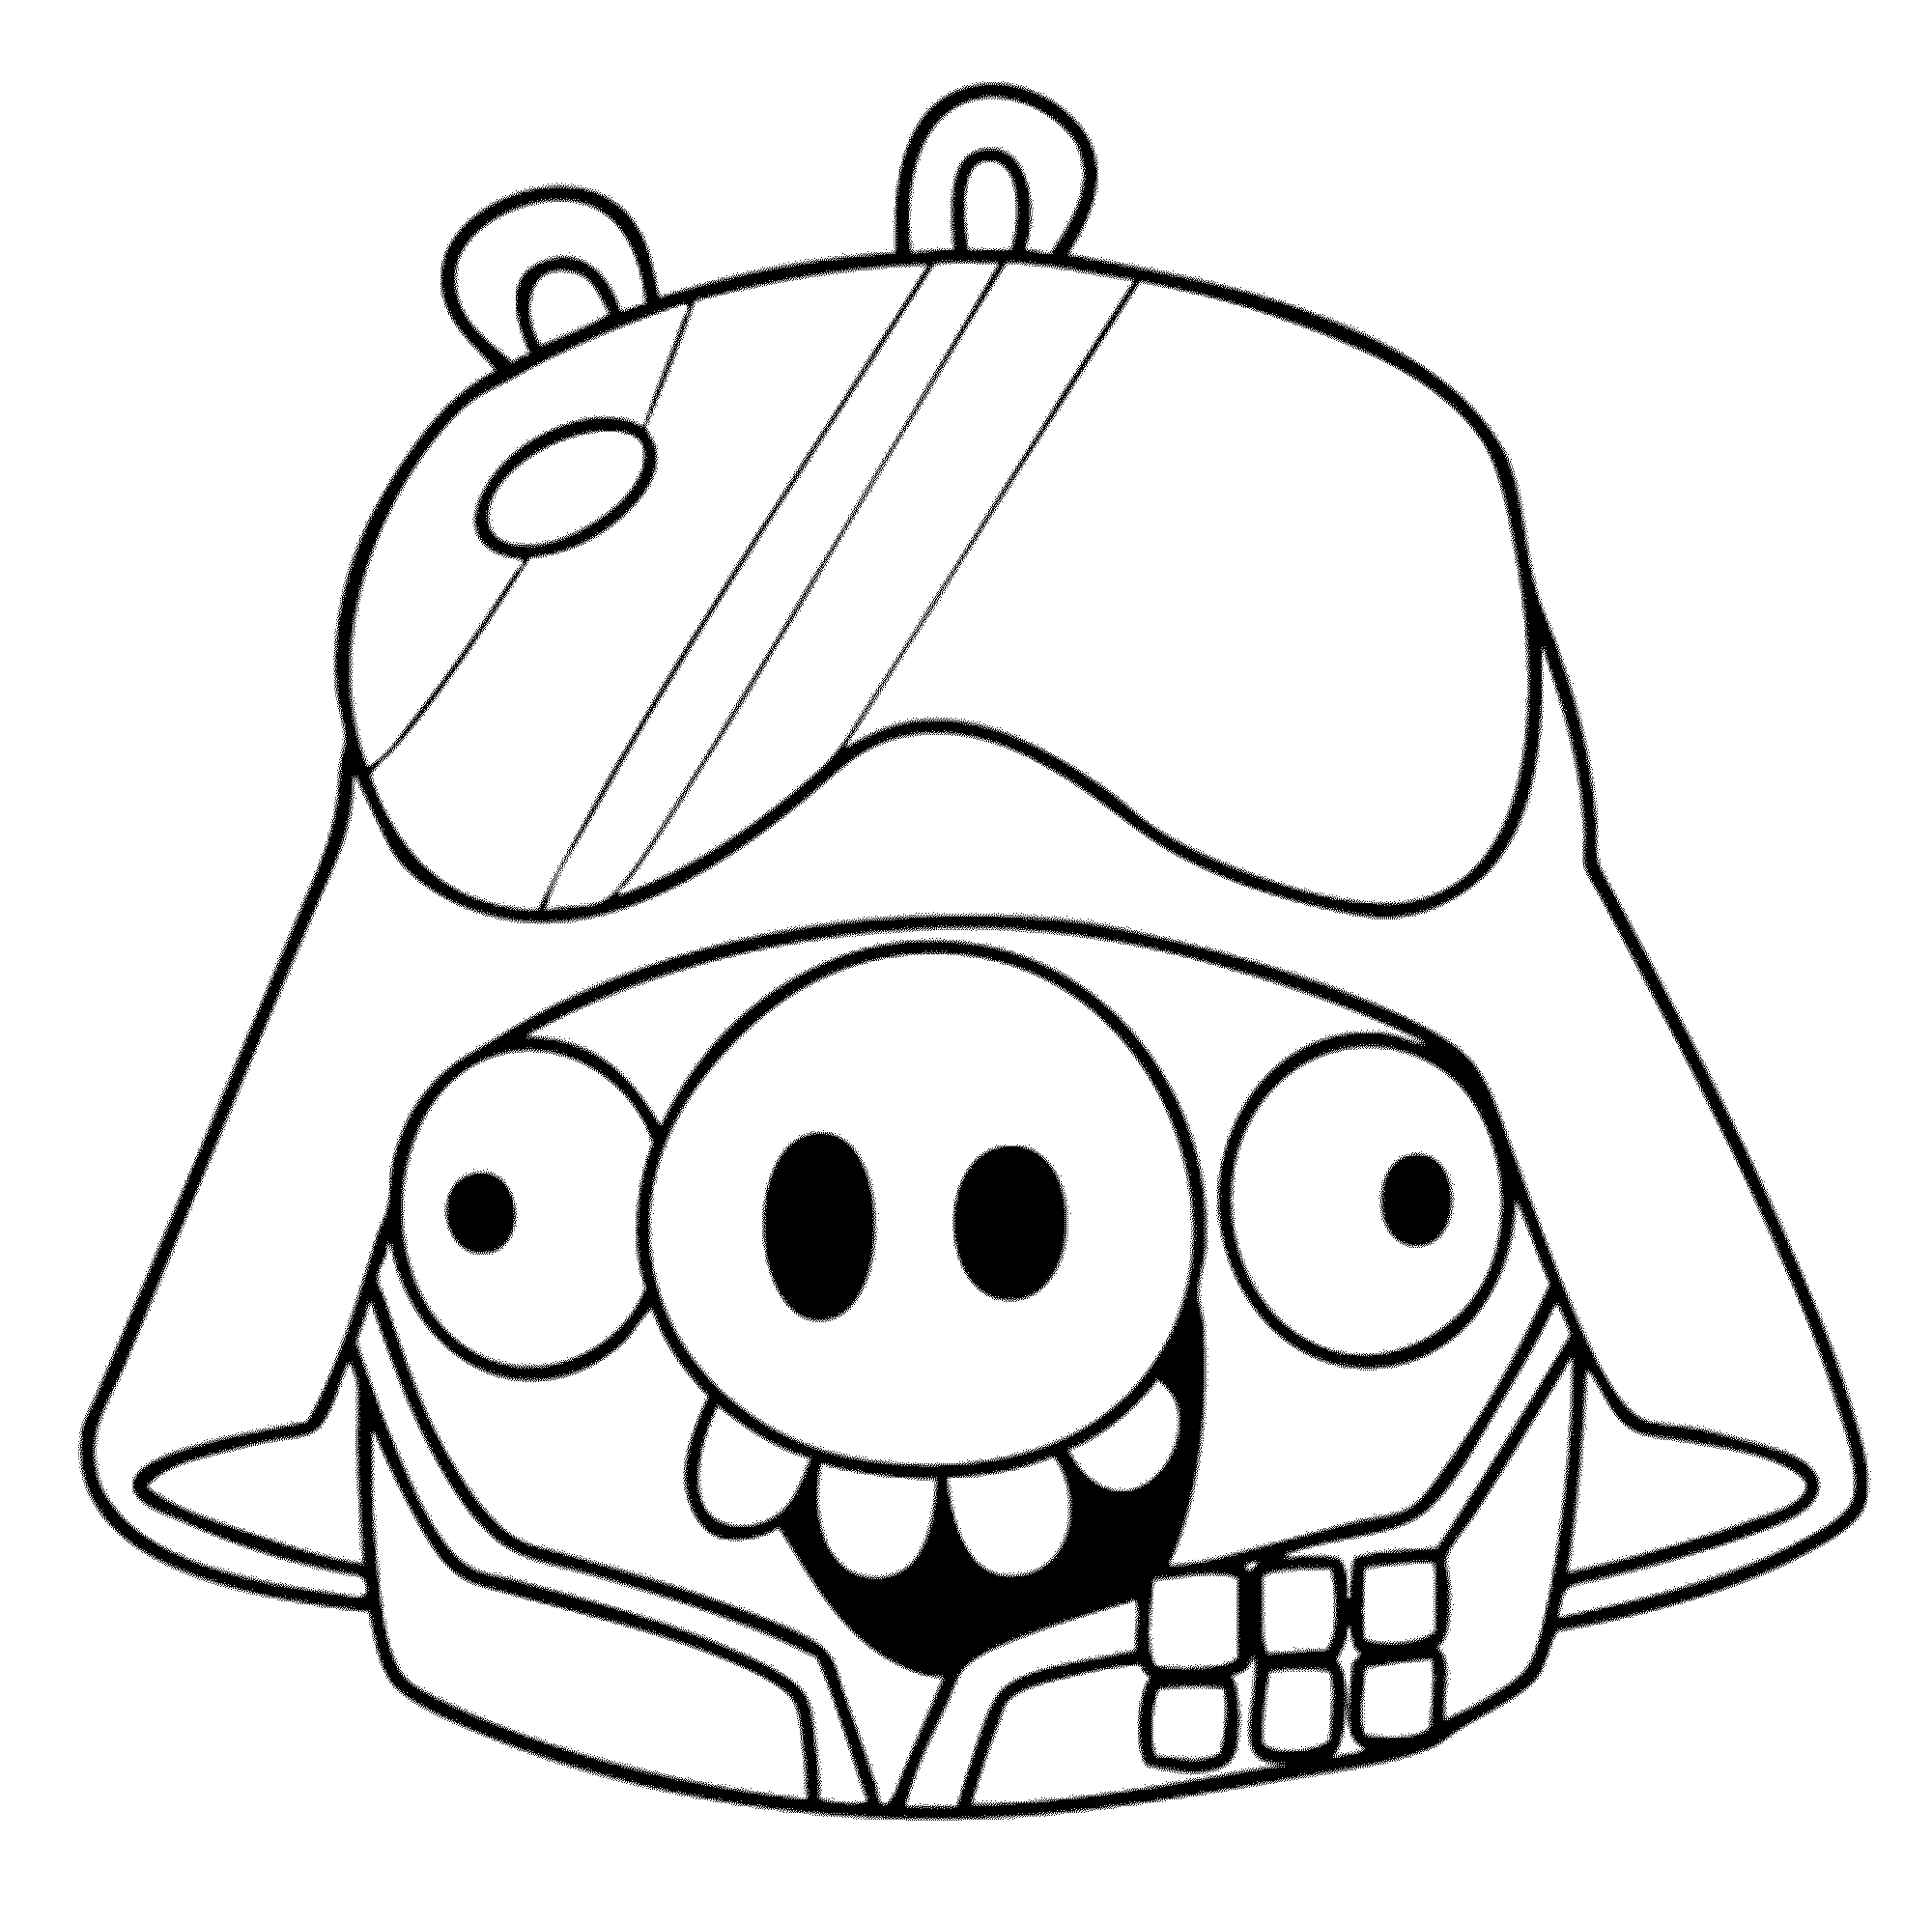 2000x1992 Angry Birds Space Coloring Pages Pdf Download